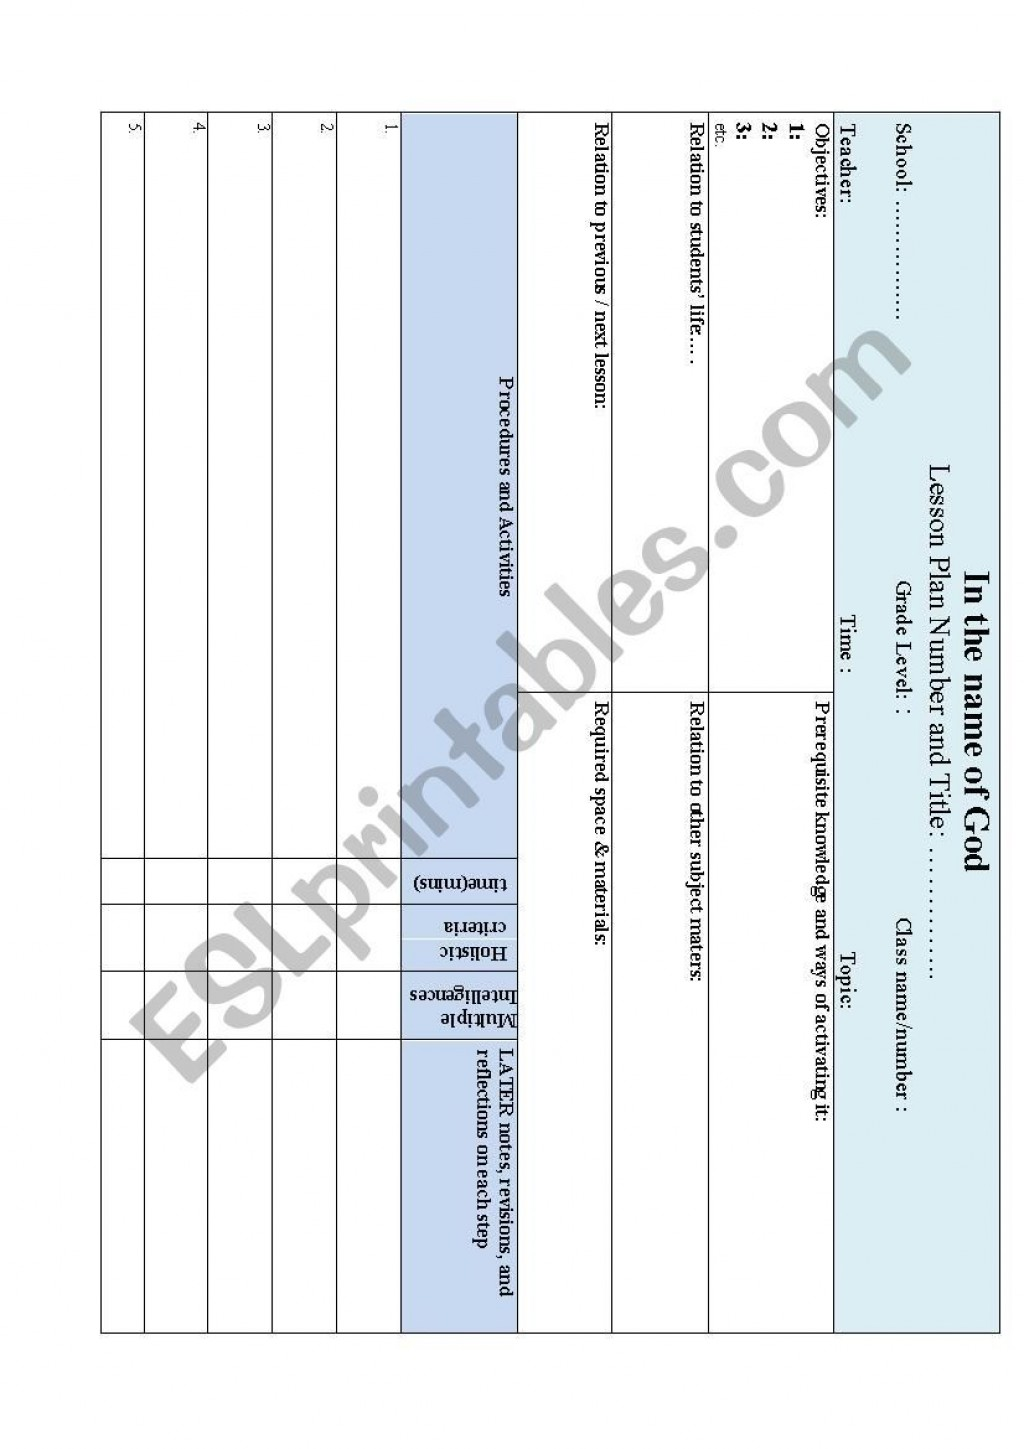 002 Wonderful Unit Lesson Plan Template Design  Word Thematic Example PdfLarge